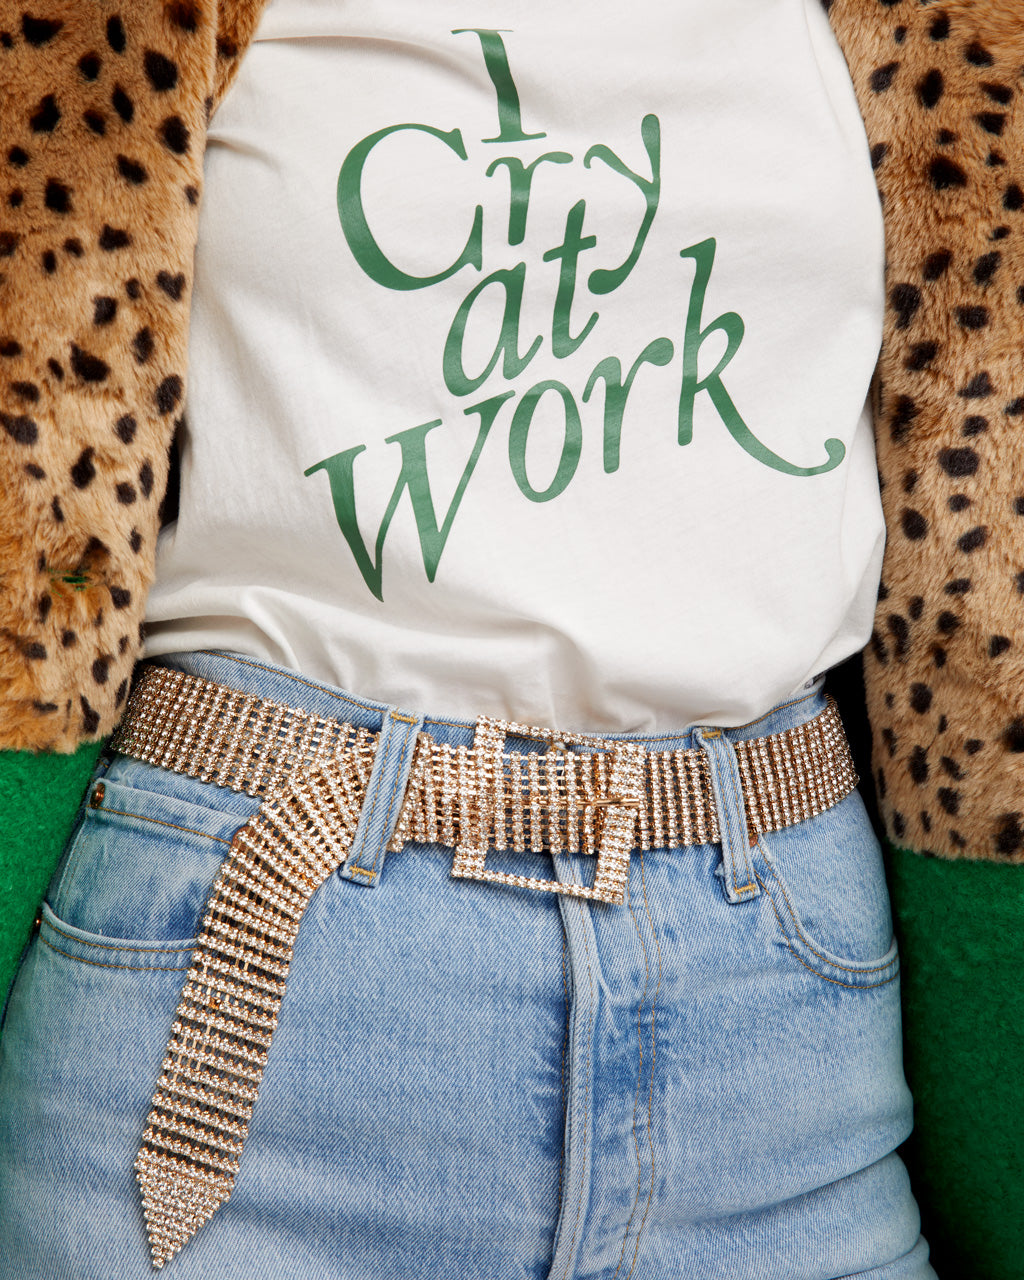 White short sleeve tshirt with green graphic.